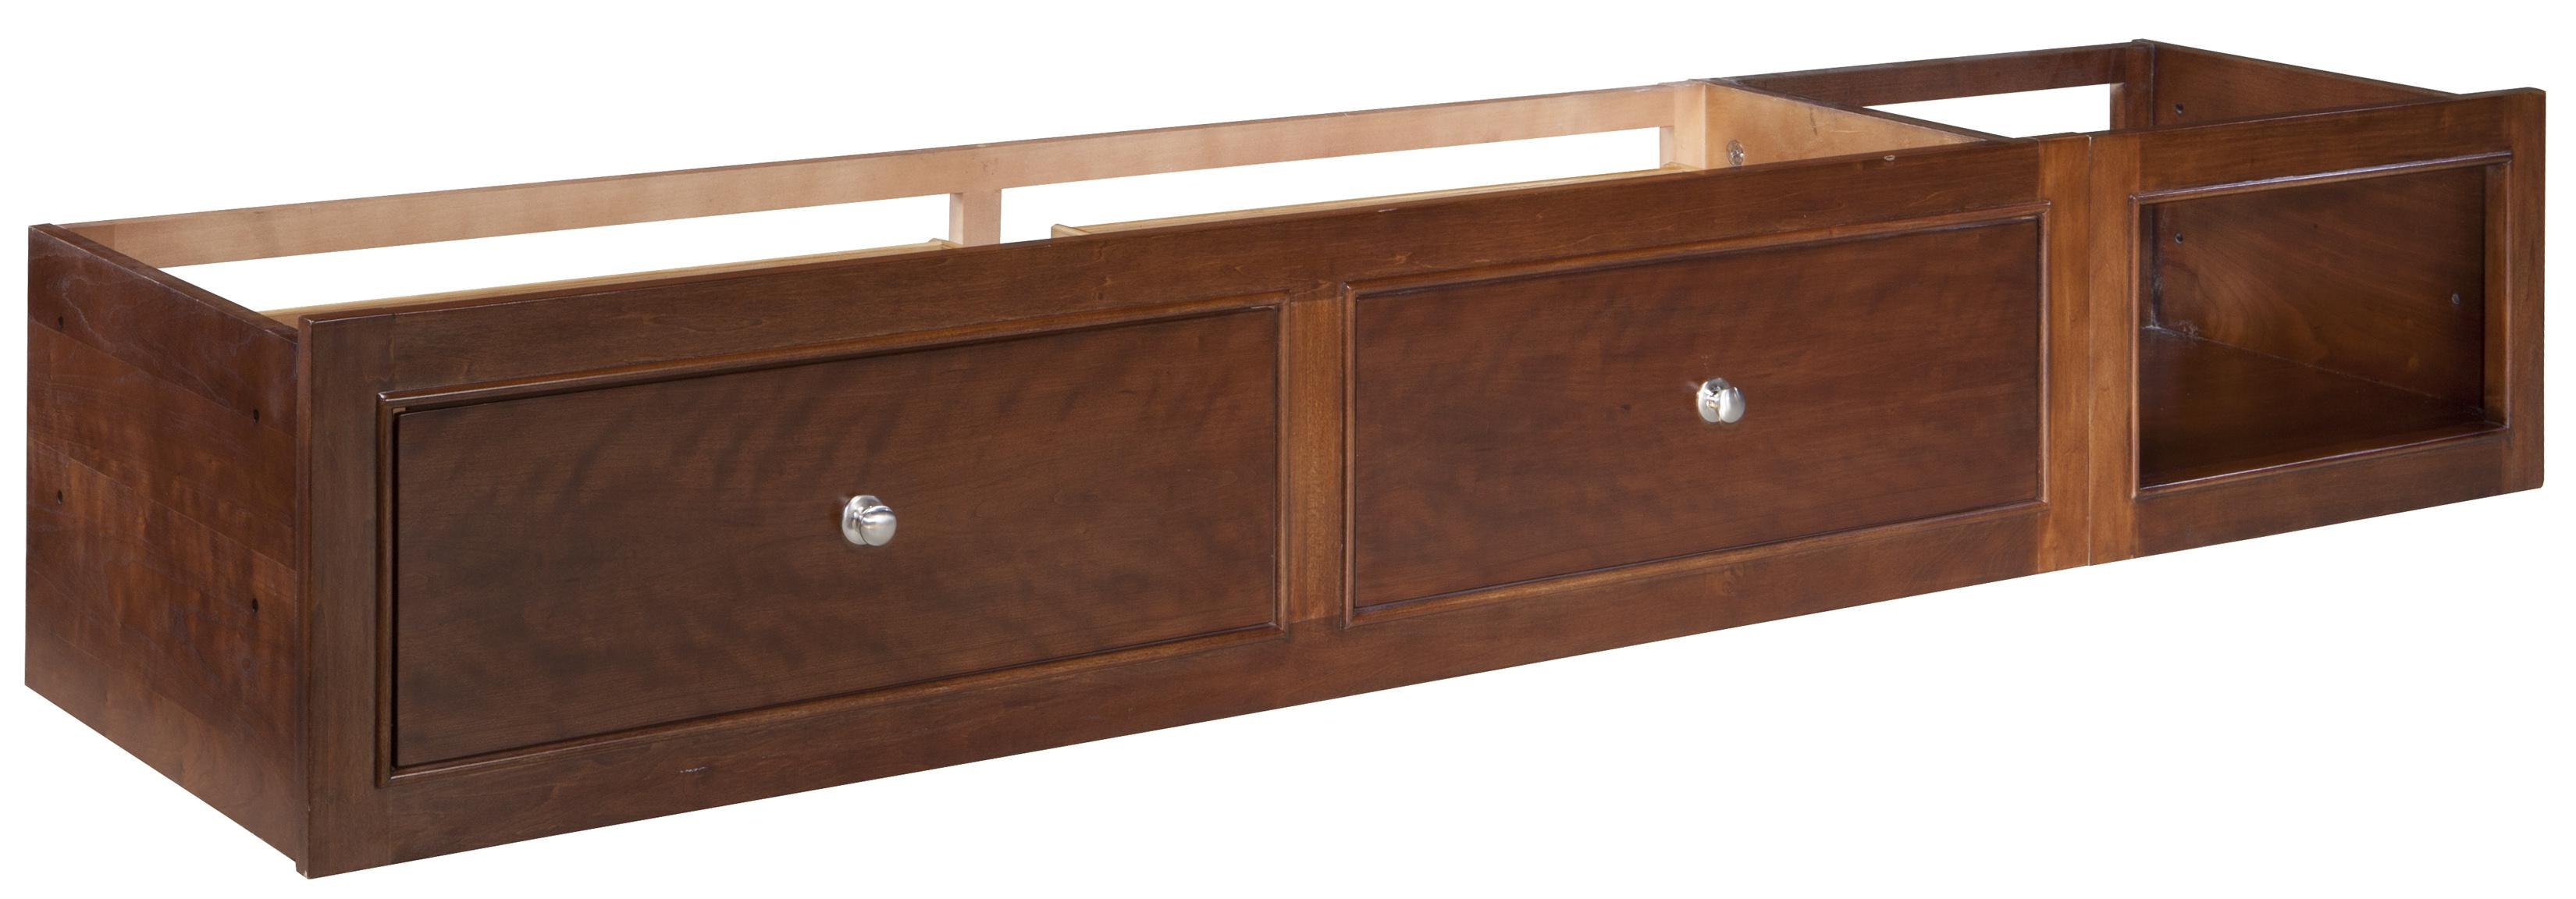 Legacy Classic Kids Impressions Underbed Storage Drawer - Item Number: 2880-9300